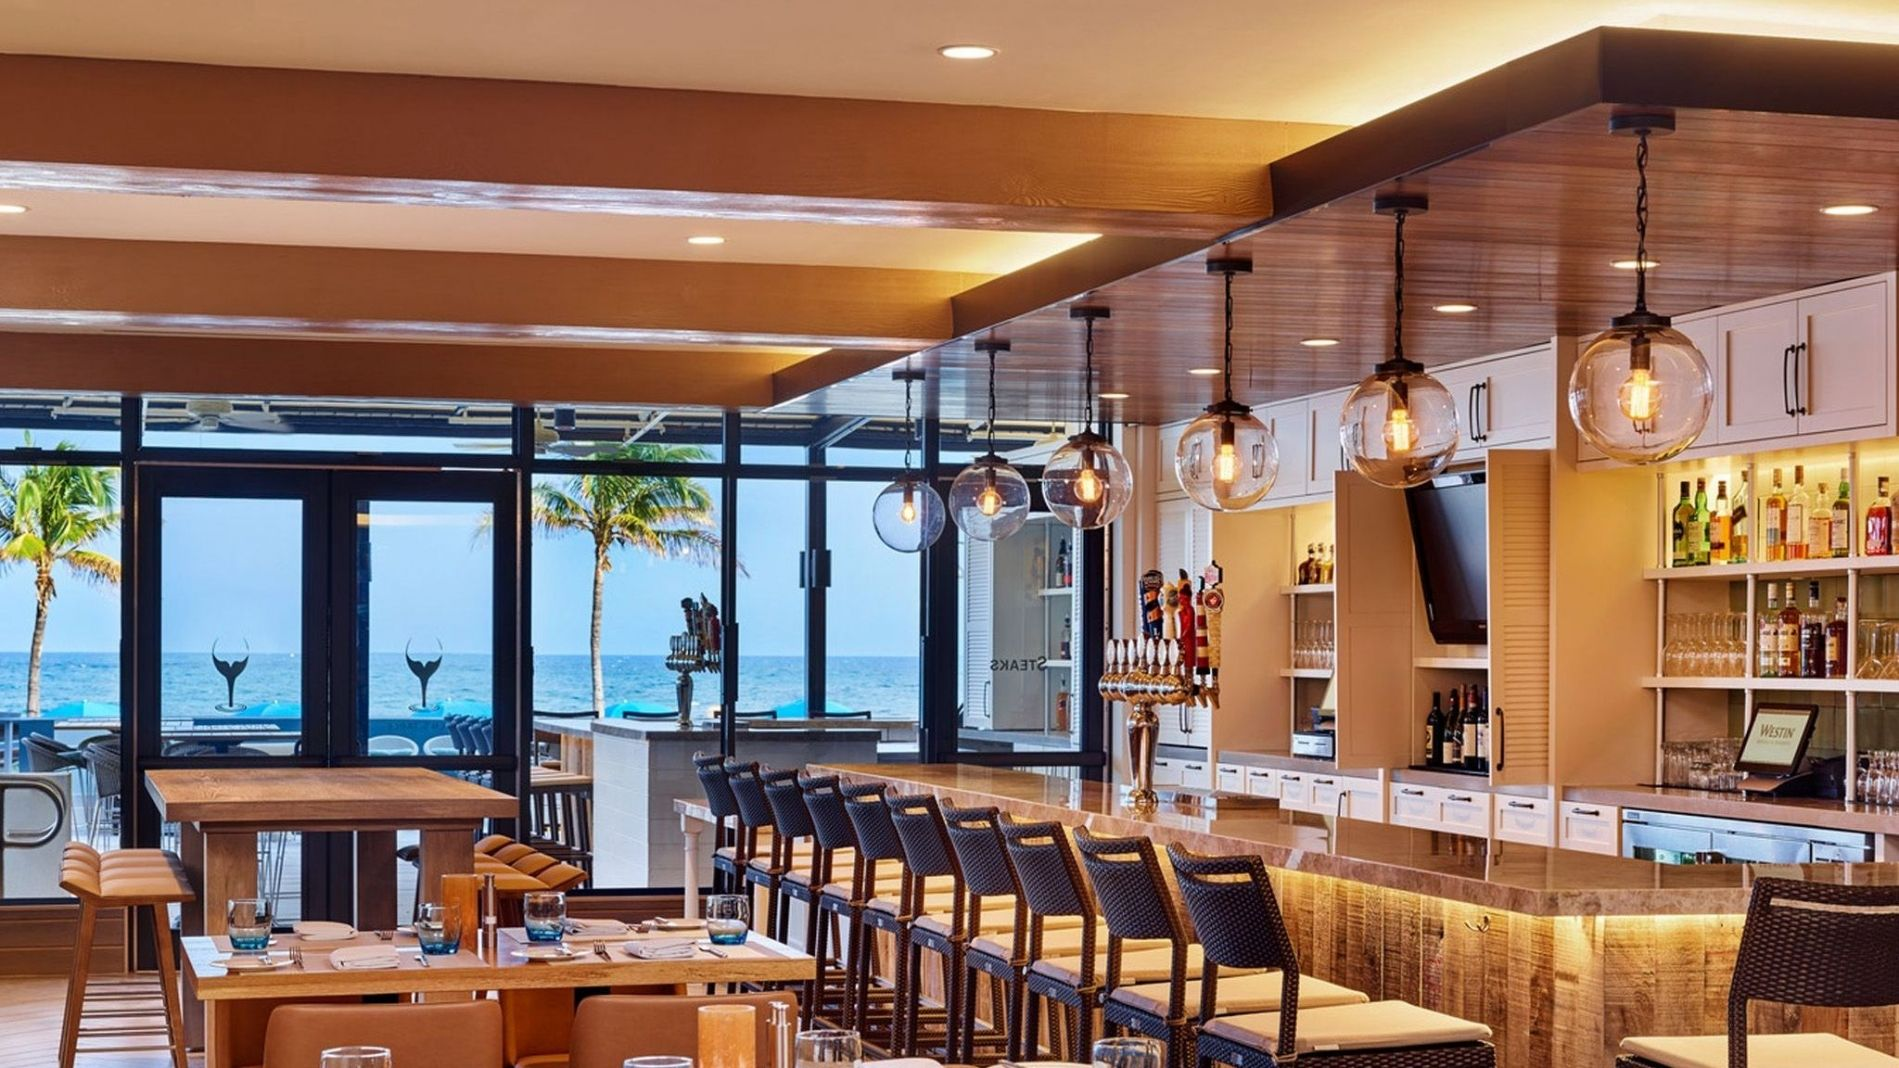 Fort lauderdale restaurants siren 39 s table for Table 52 restaurant gaborone